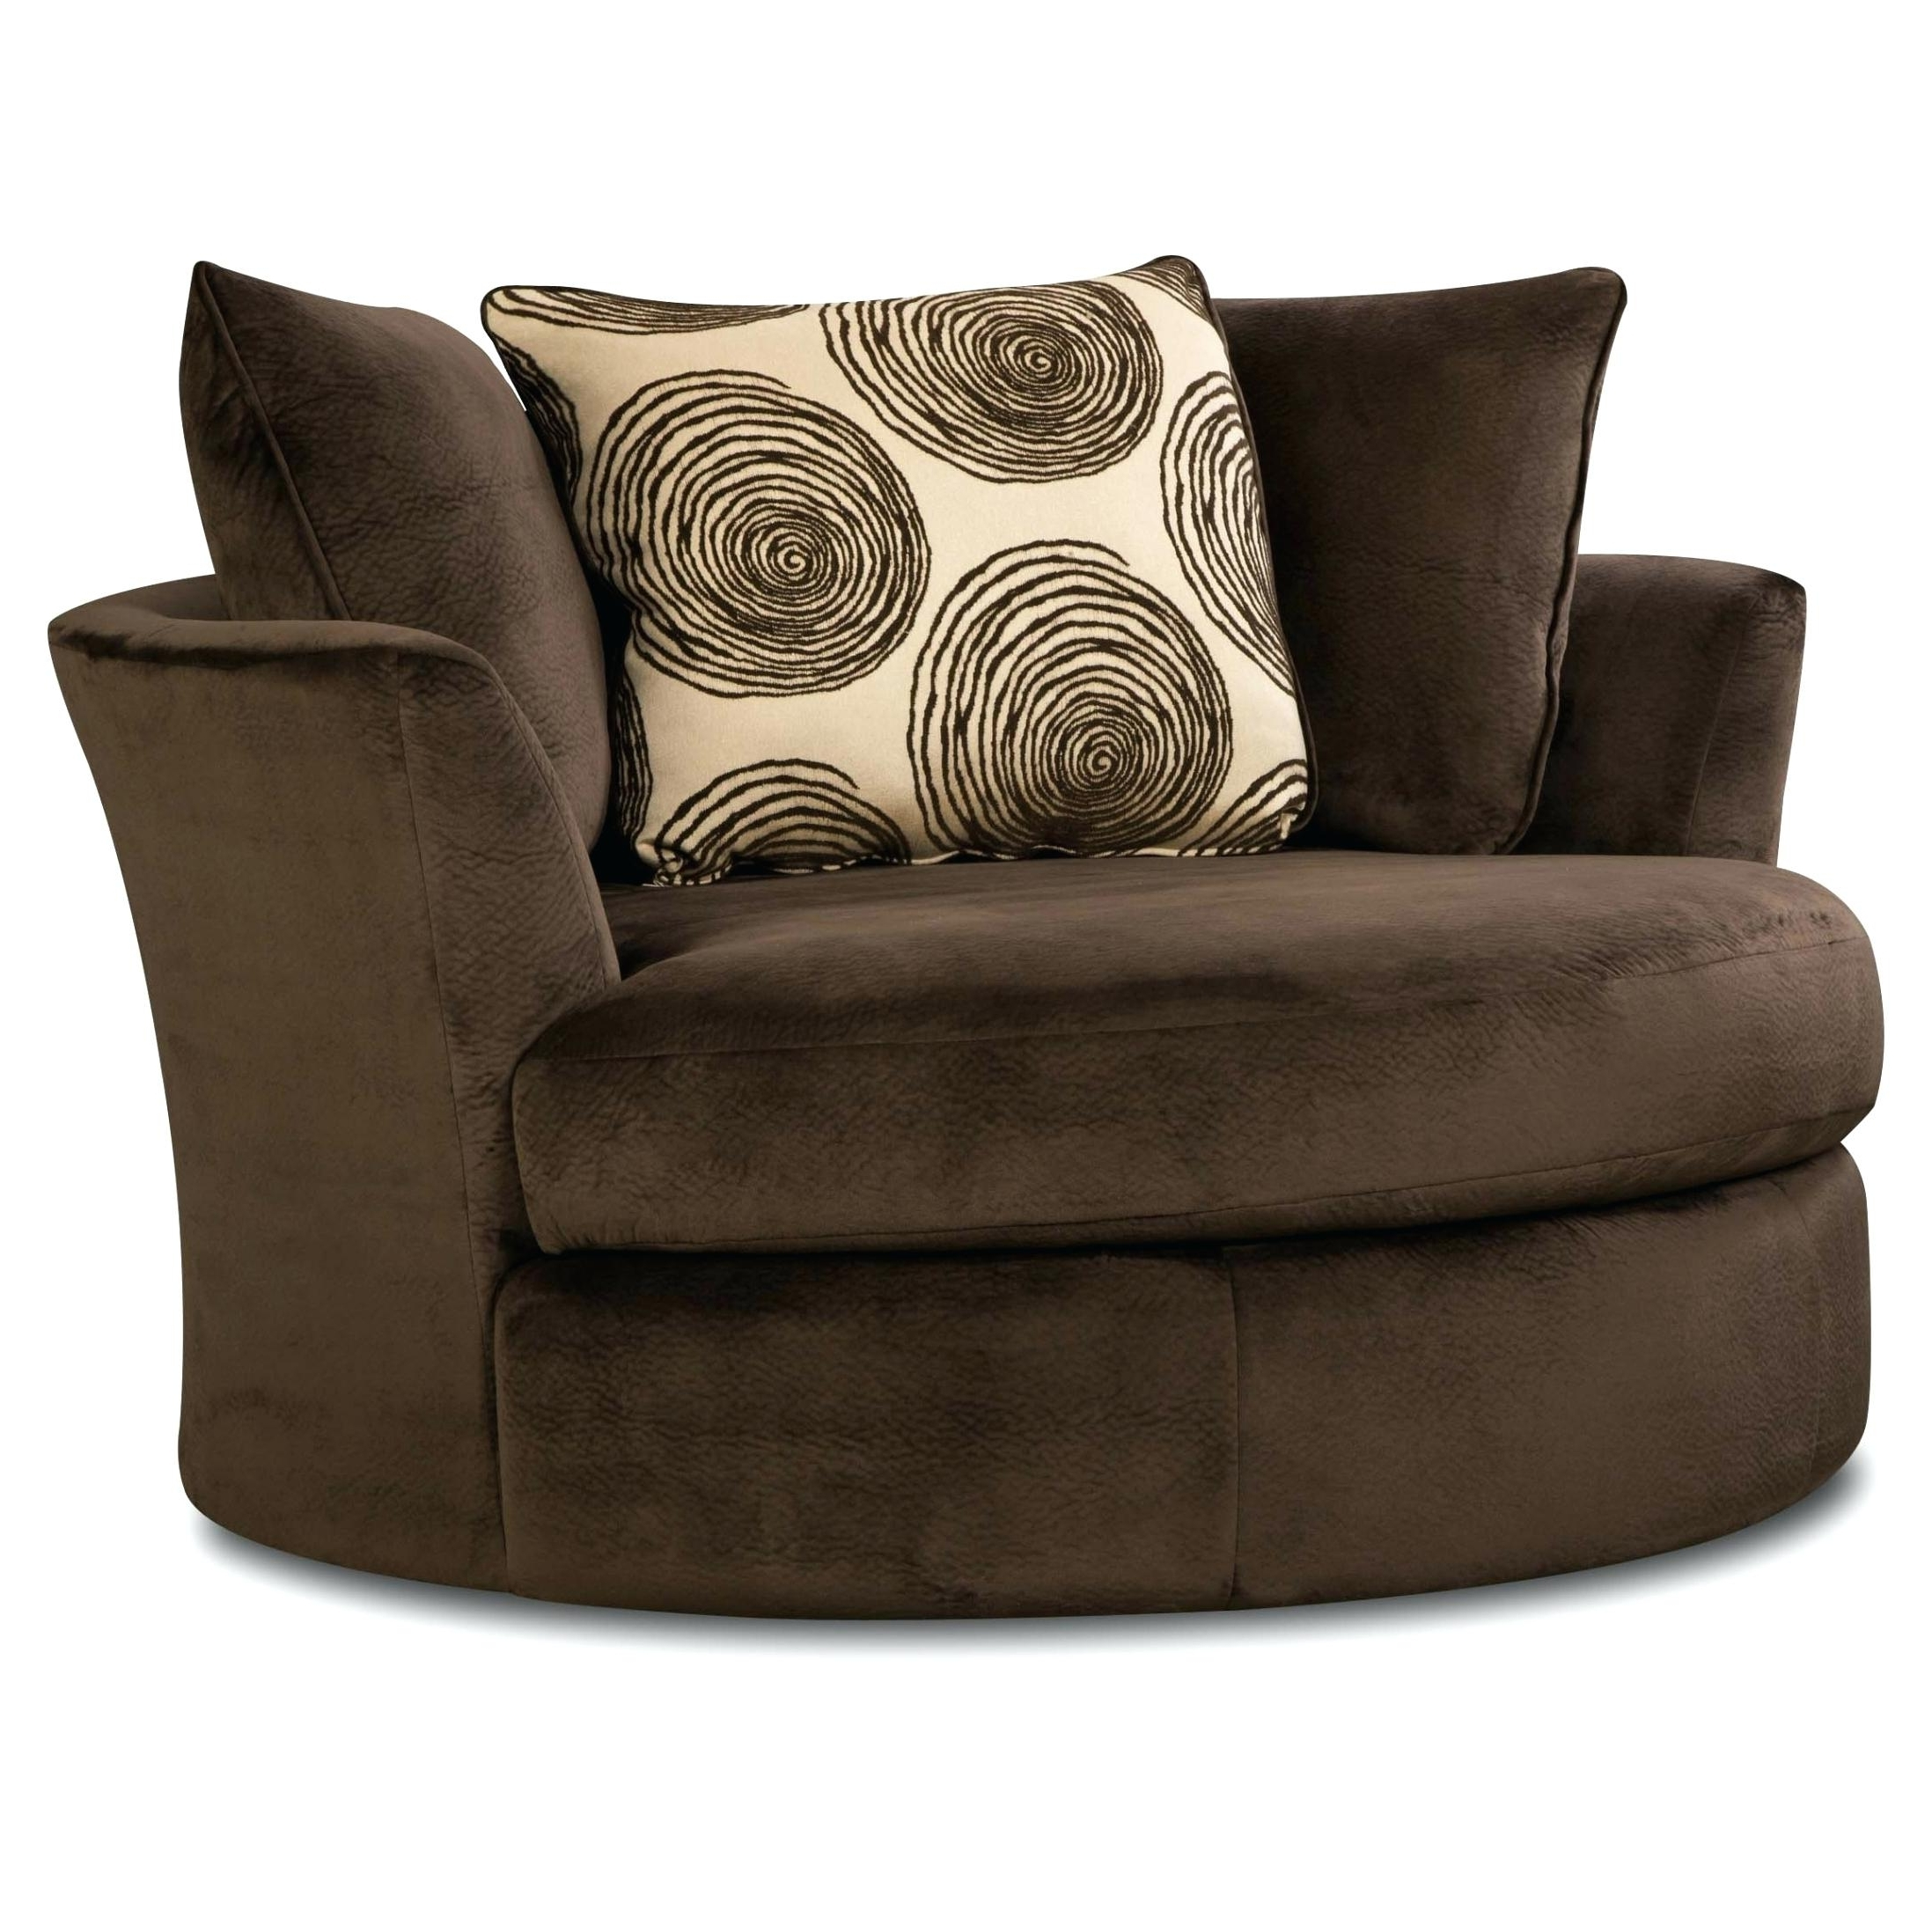 Accent Sofa Chairs Intended For Famous Furniture Elegant Brown Leather Sofarachlinith Accent Chair (View 8 of 20)